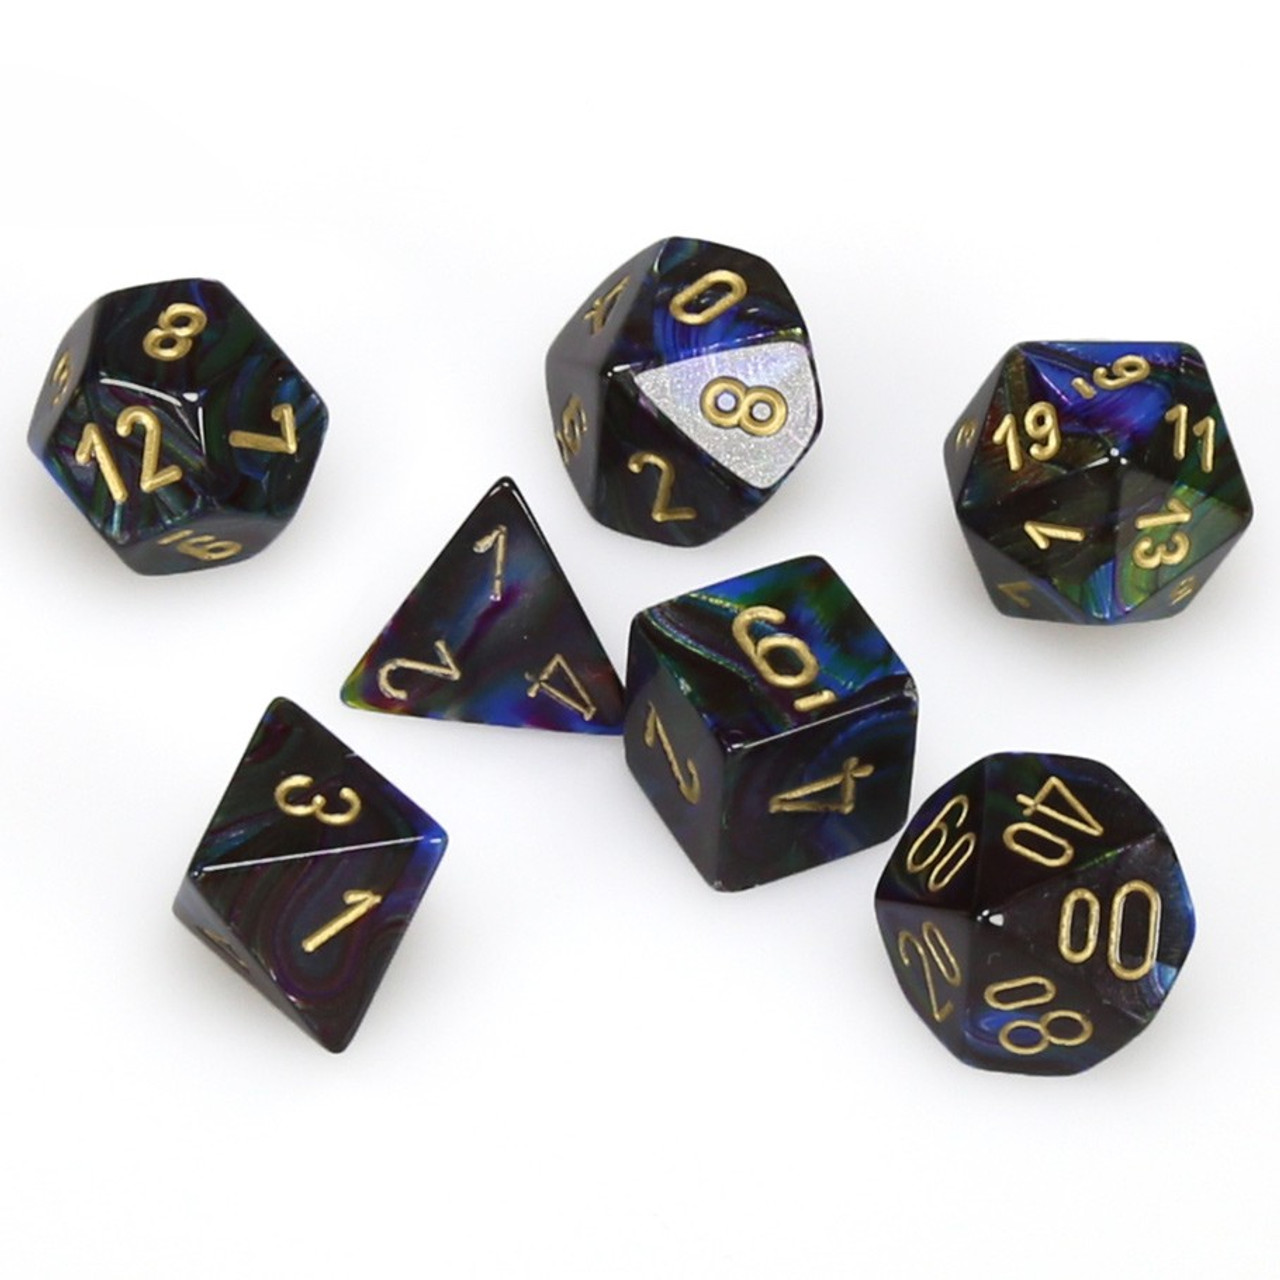 Lustrous 7 Piece Dice Set   Shadow   Dice Game Depot D D dice   7 Piece RPG Dice Set   Lustrous Shadow